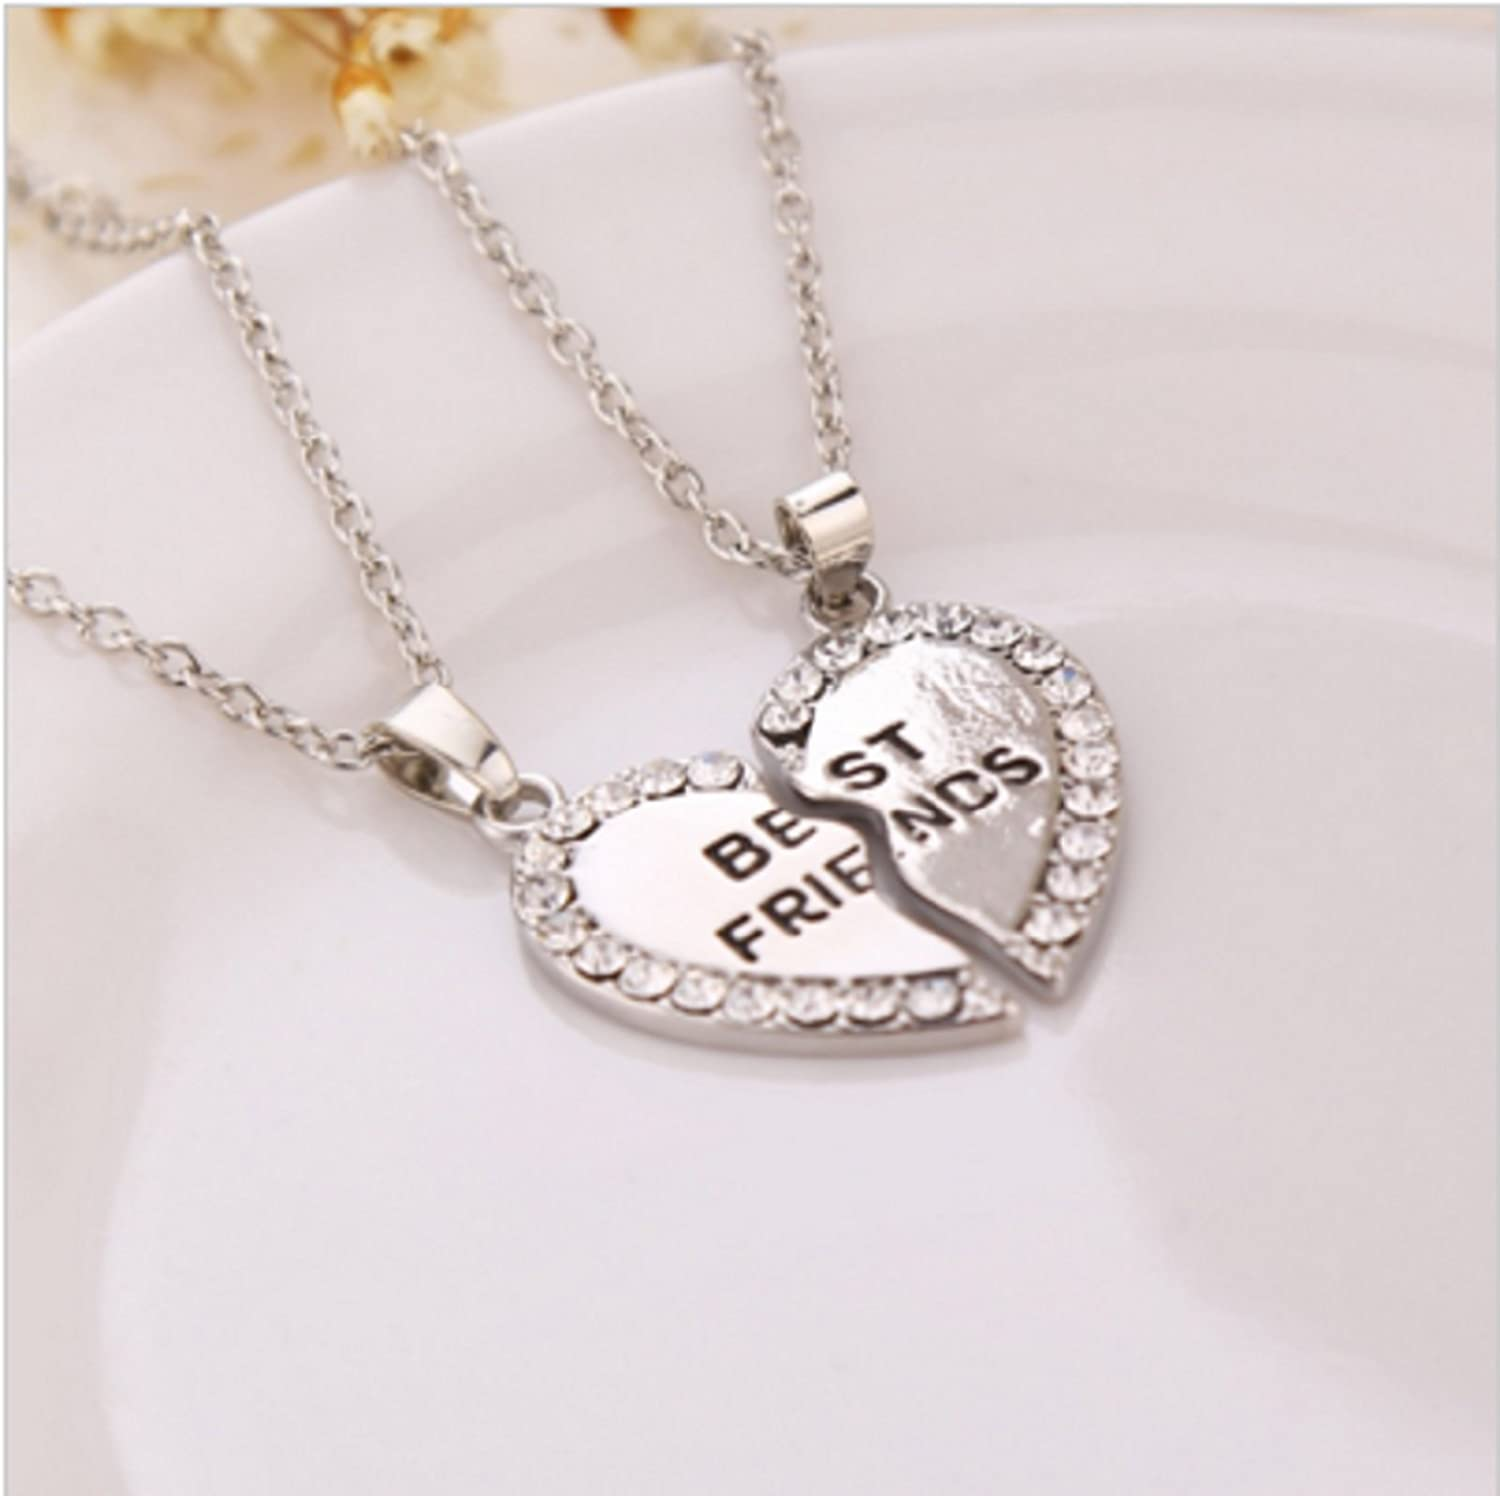 lockets the friend jewelry choose inspiring we necklace sisters locket product quote friends words pendant are best